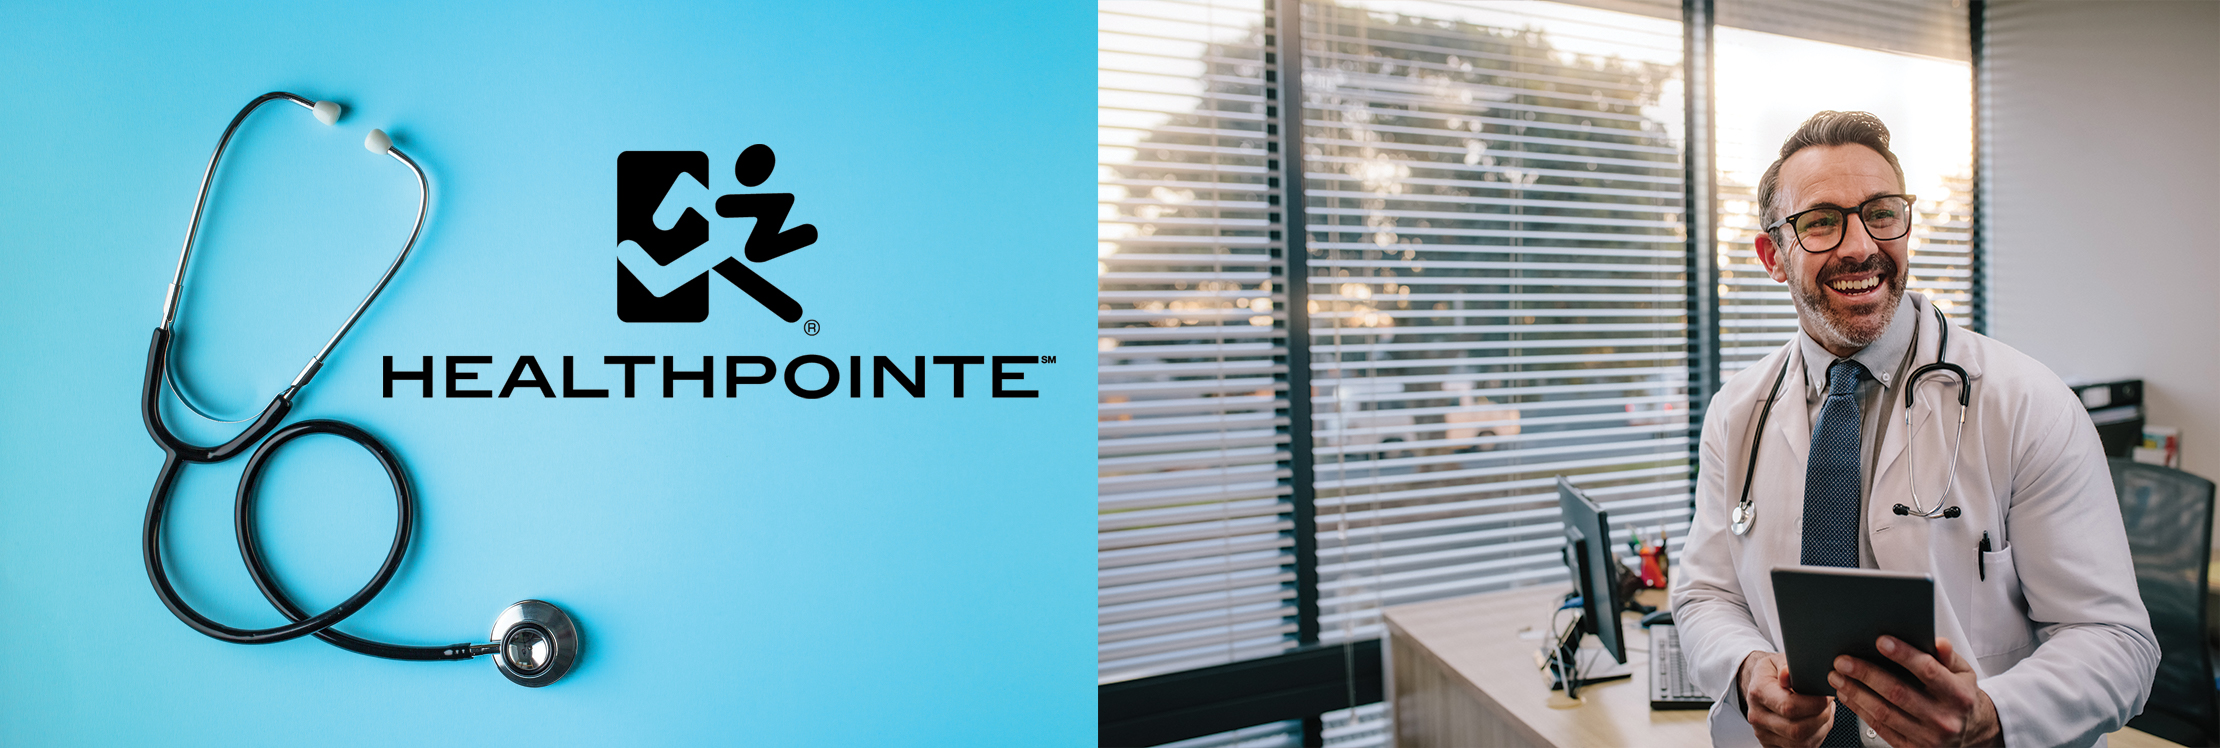 Healthpointe reviews   Medical Centers at 2226 Medical Center Dr - Perris CA